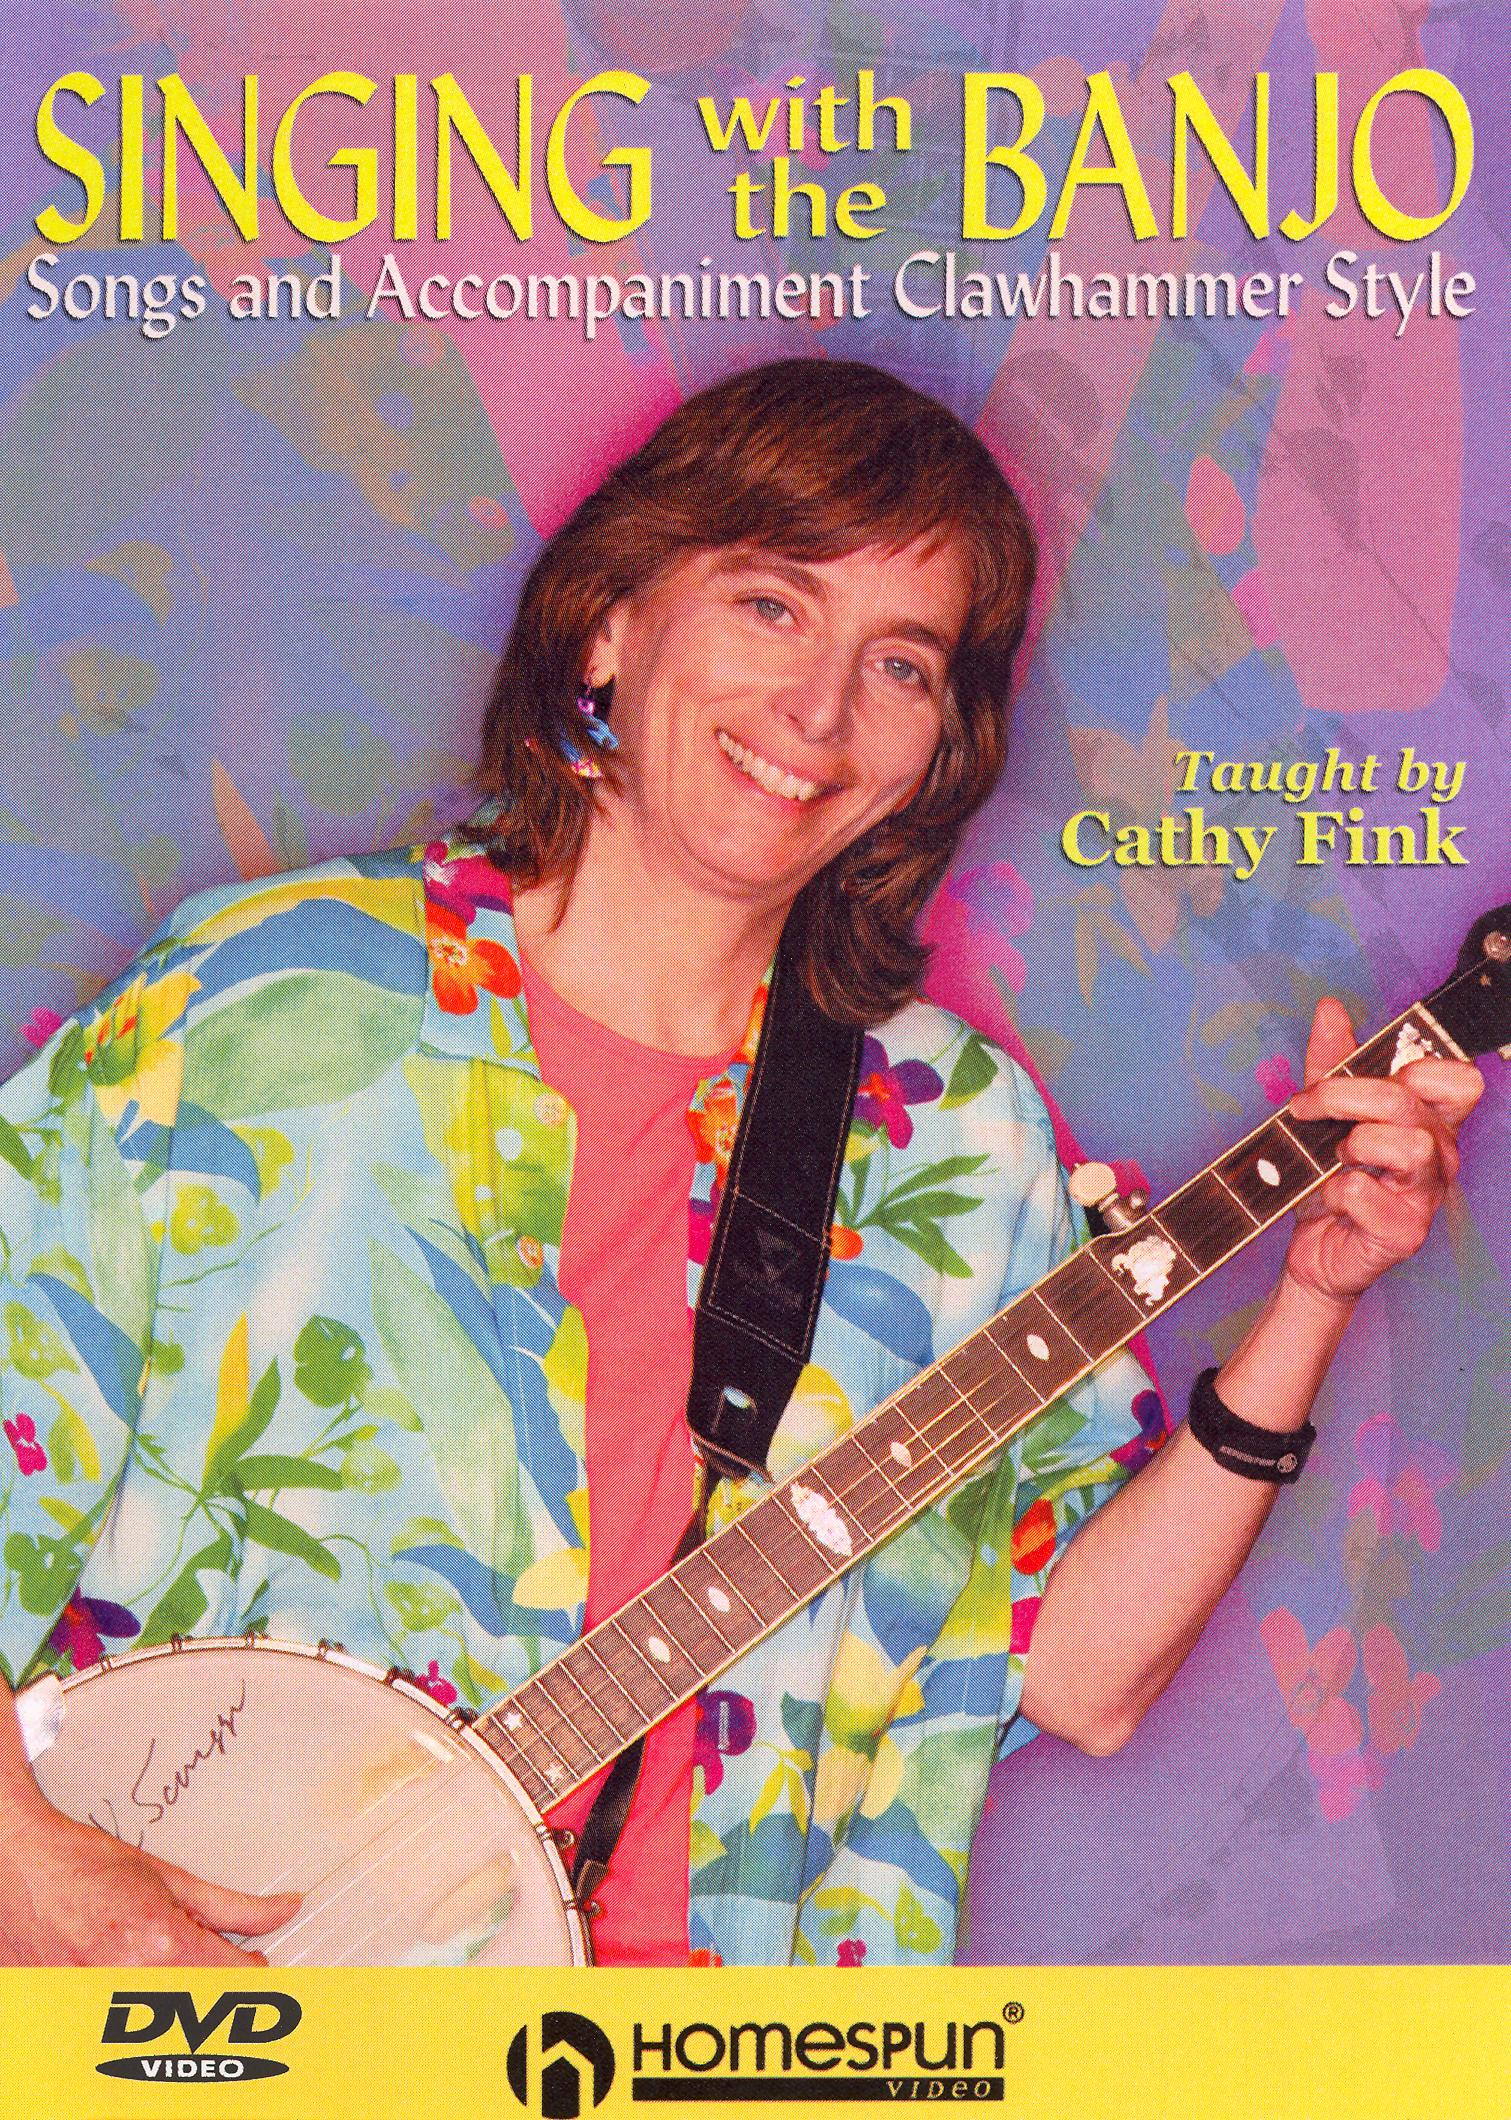 Cathy Fink: Singing with the Banjo